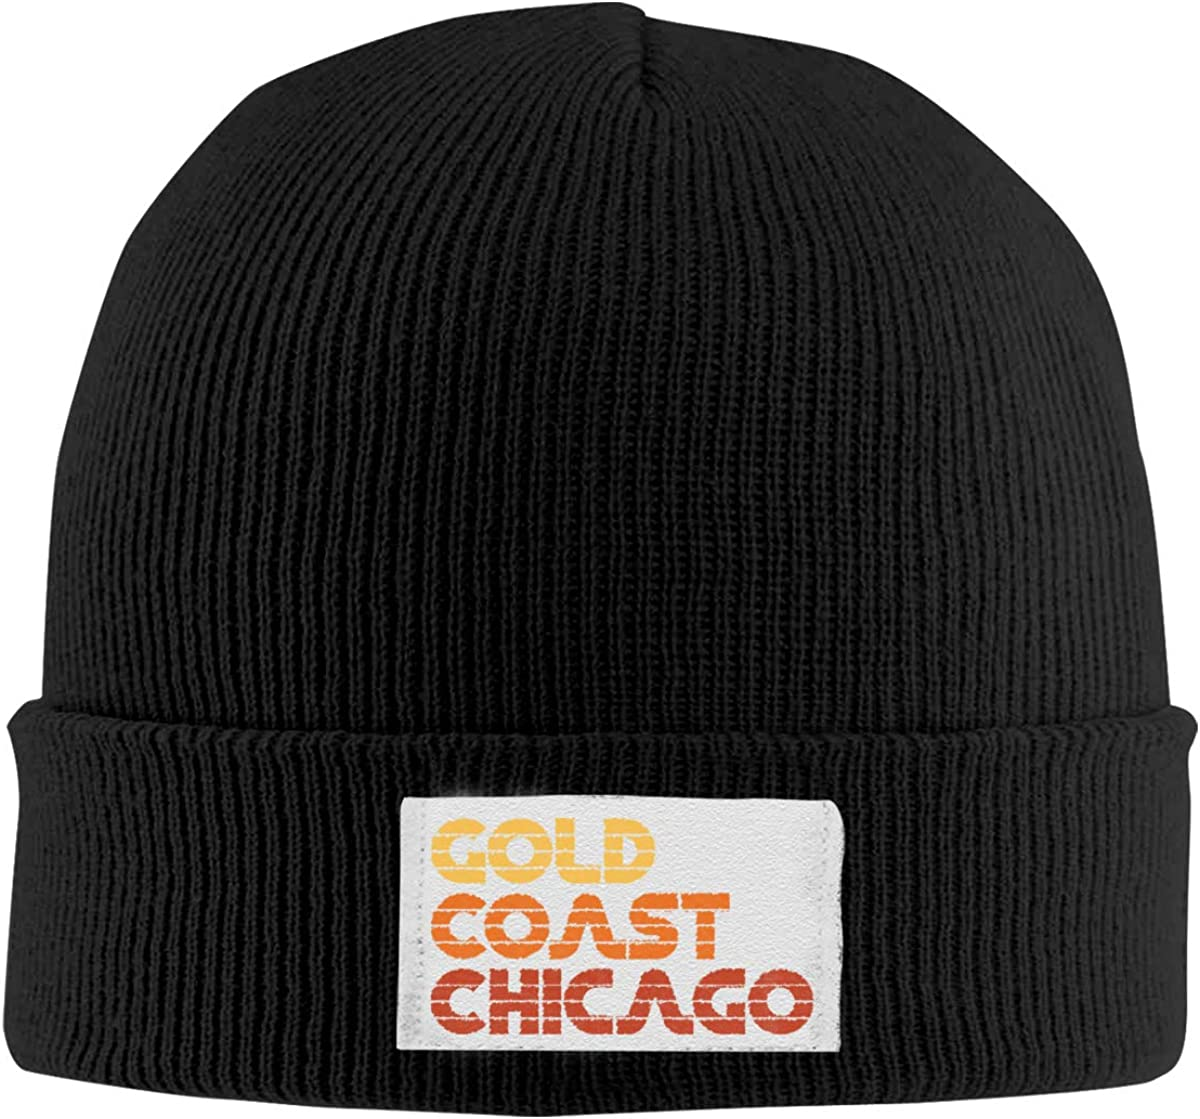 Gold Coast Chicago Knitted Hats Beanie Cap Casual Unisex Winter